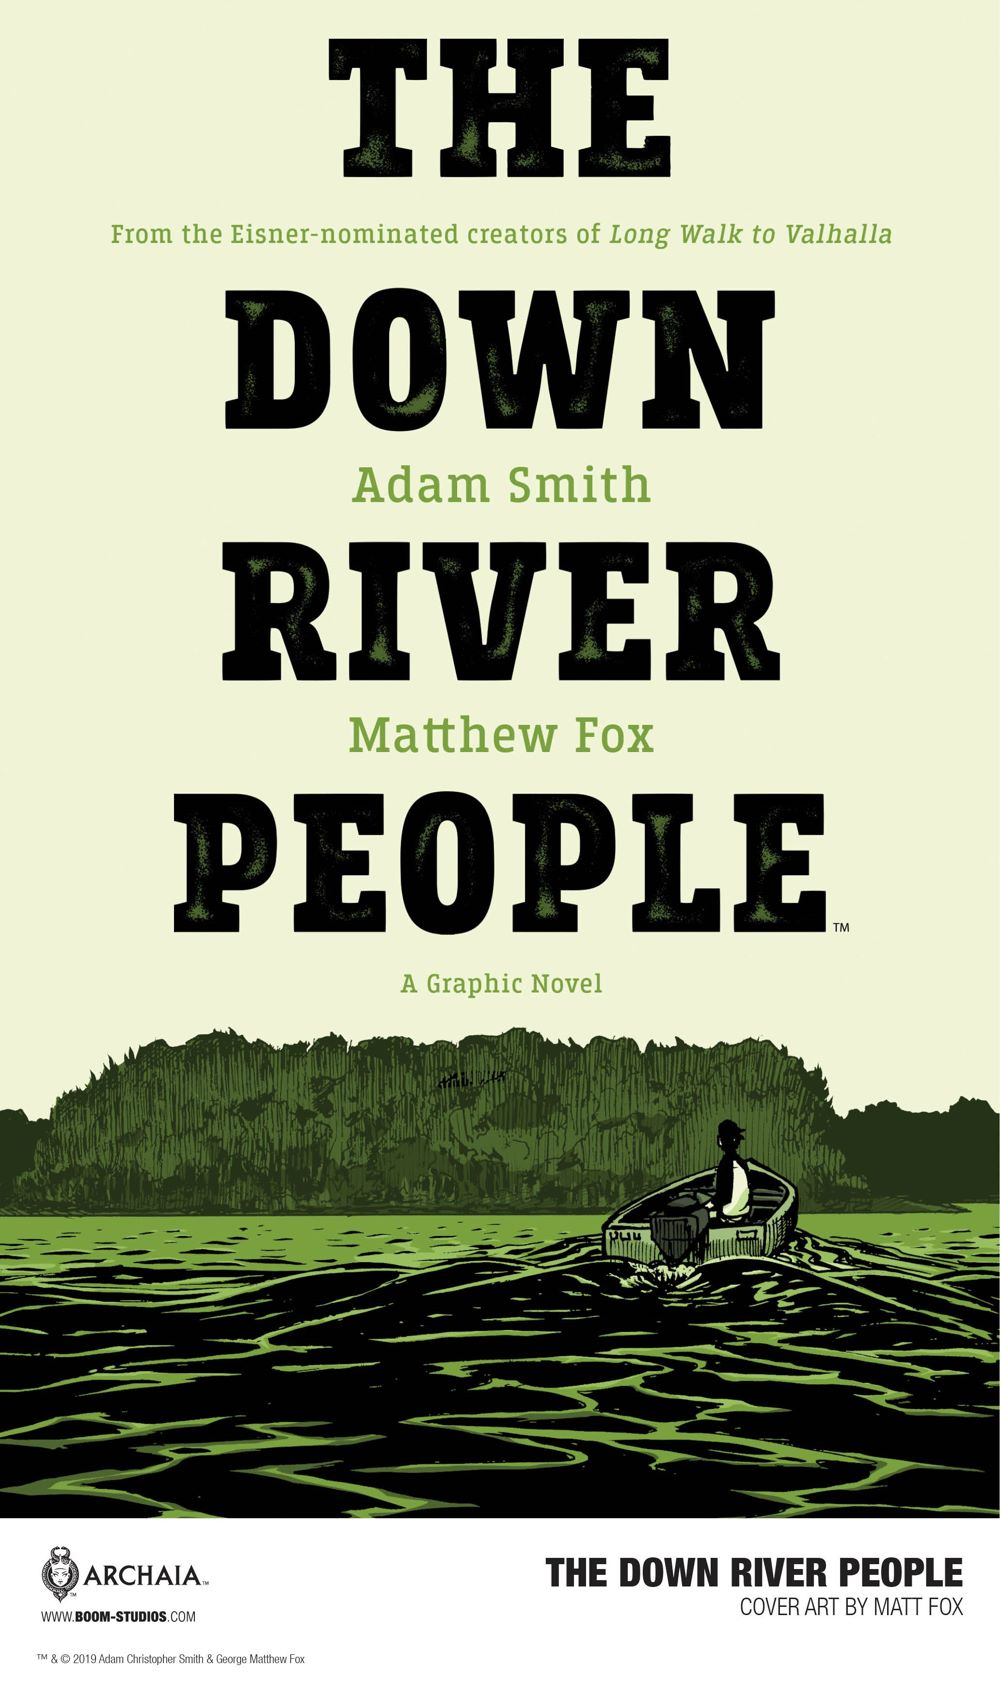 DownRiverPeople_Cover_Promo-2 Second Look at BOOM! Studios' THE DOWN RIVER PEOPLE GN